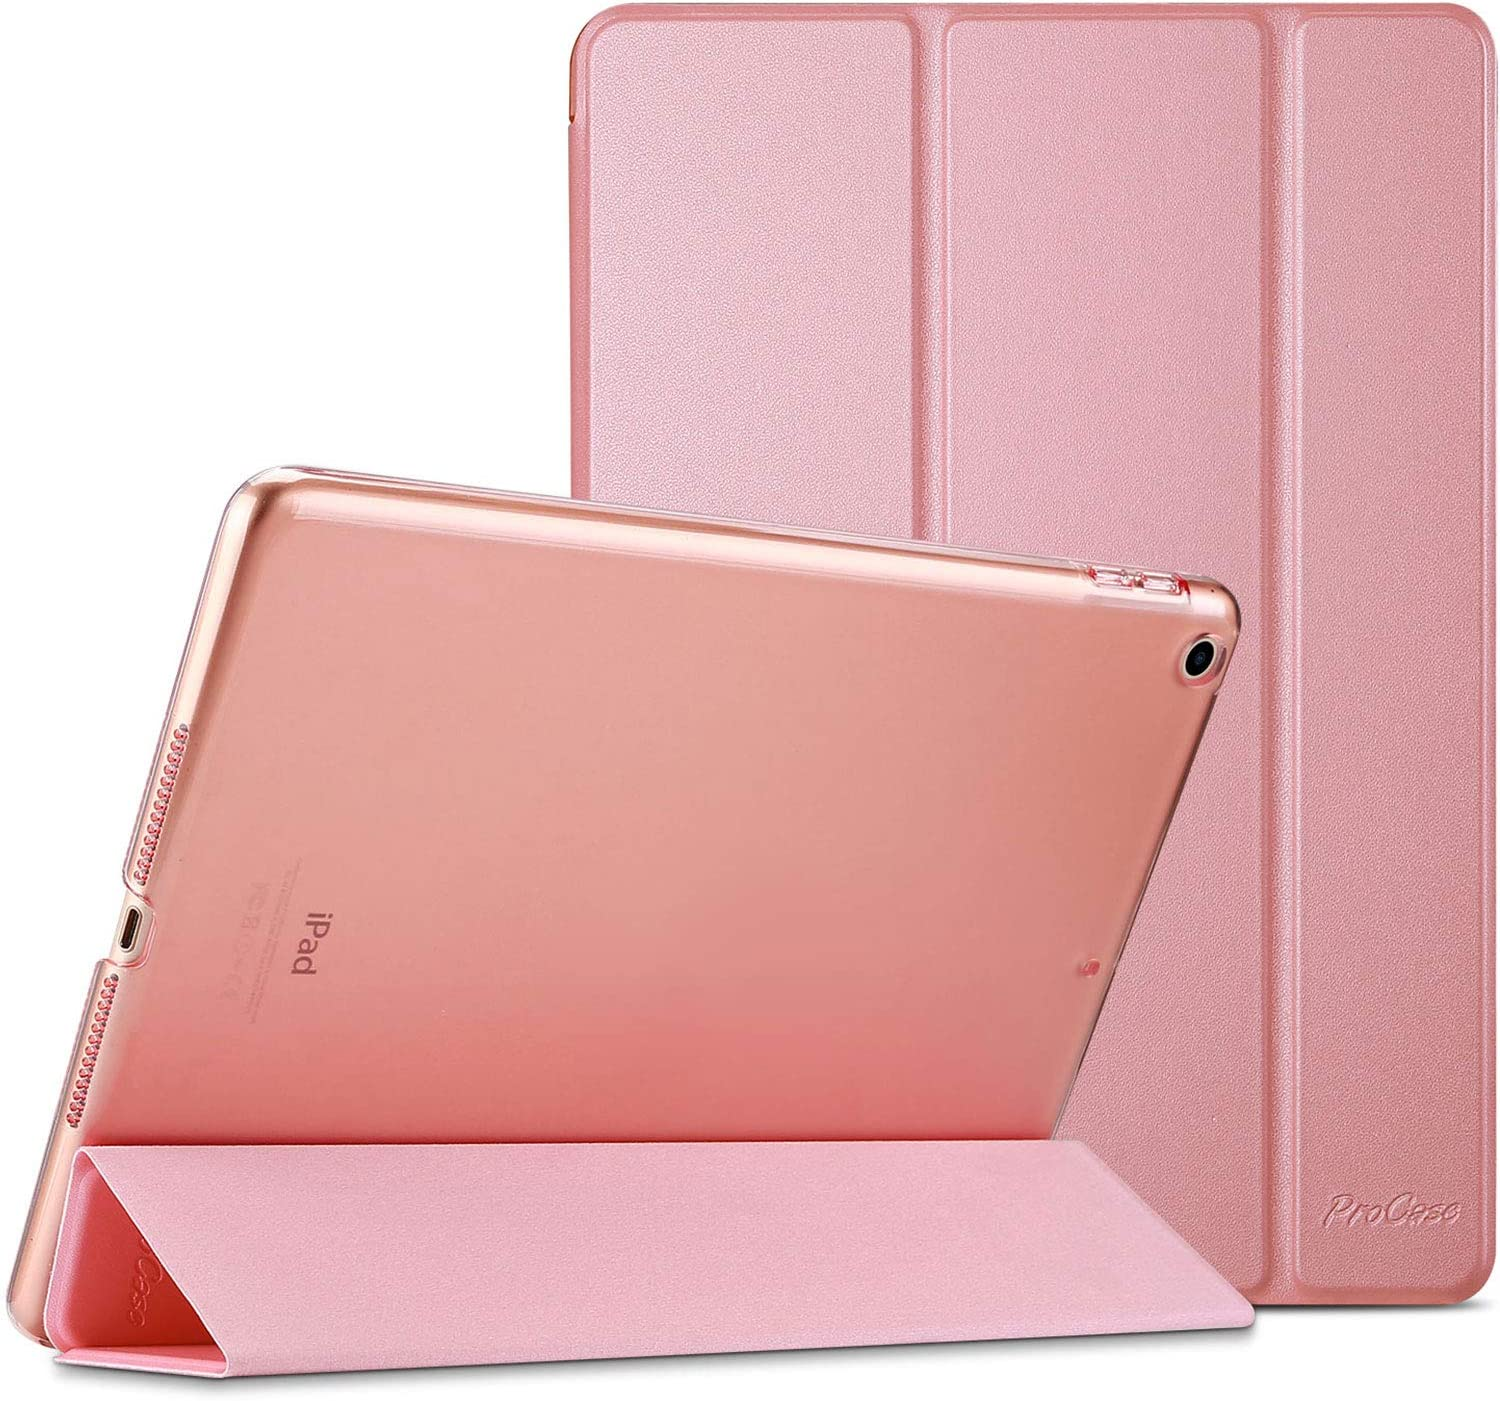 ProCase iPad 9.7 Case 2018 iPad 6th Generation Case / 2017 iPad 5th Generation Case - Ultra Slim Lightweight Stand Case with Translucent Frosted Back Smart Cover for Apple iPad 9.7 Inch –Pink